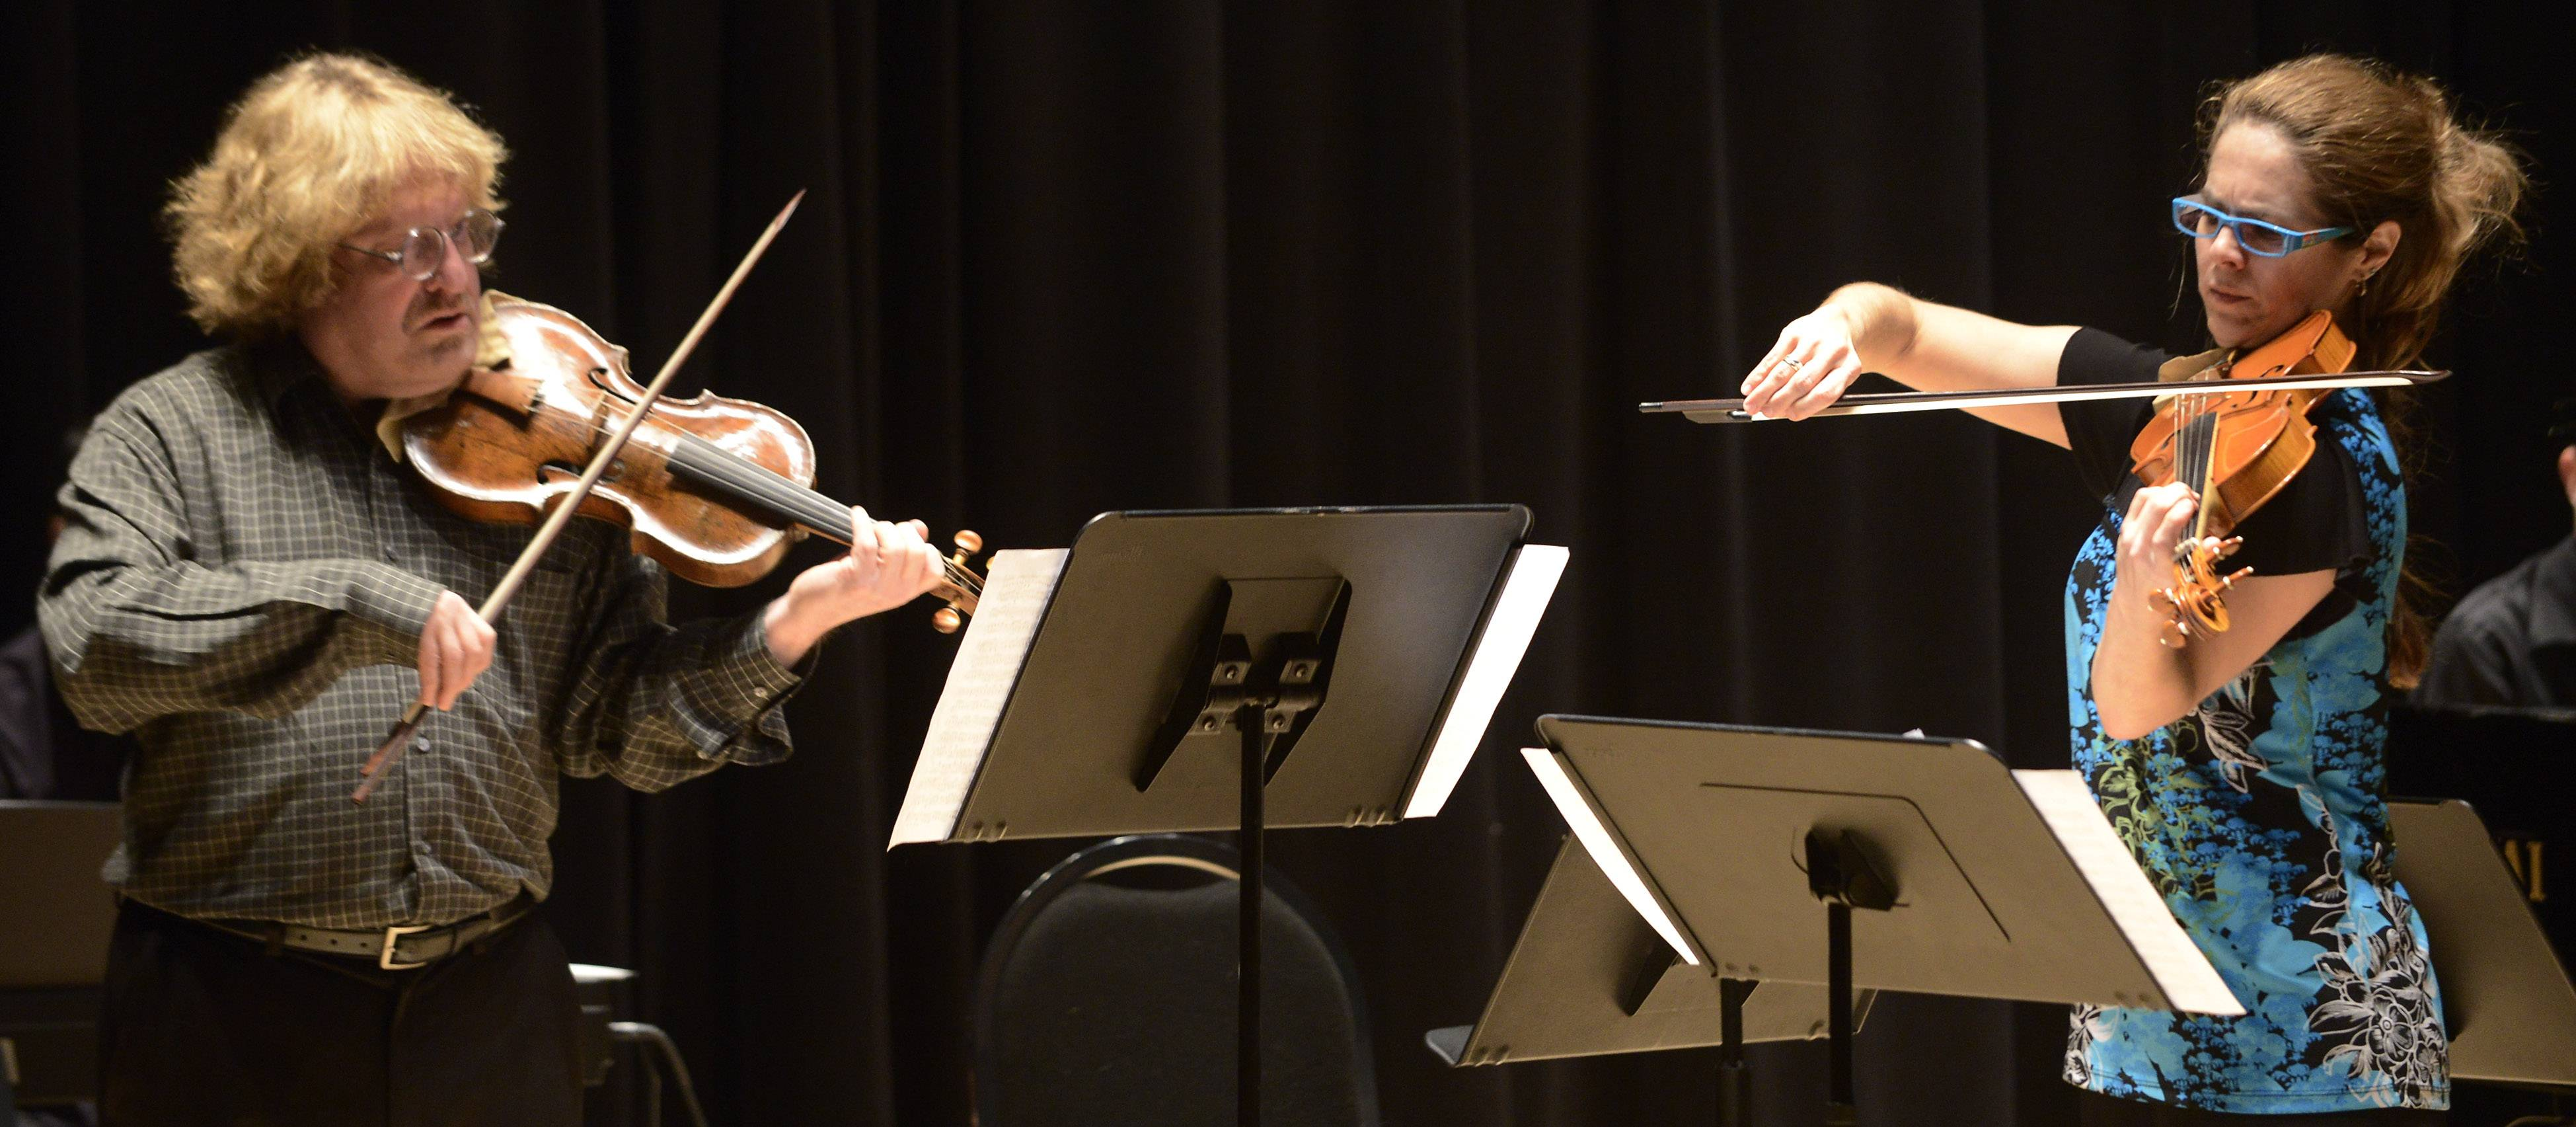 Danny Seidenberg, left, and Daryl Silberman on Baroque violins perform Sunday at the Elgin Youth Symphony Orchestra Faculty Benefit Recital. The EYSO faculty and Chamber Music Institute coaches performed together.